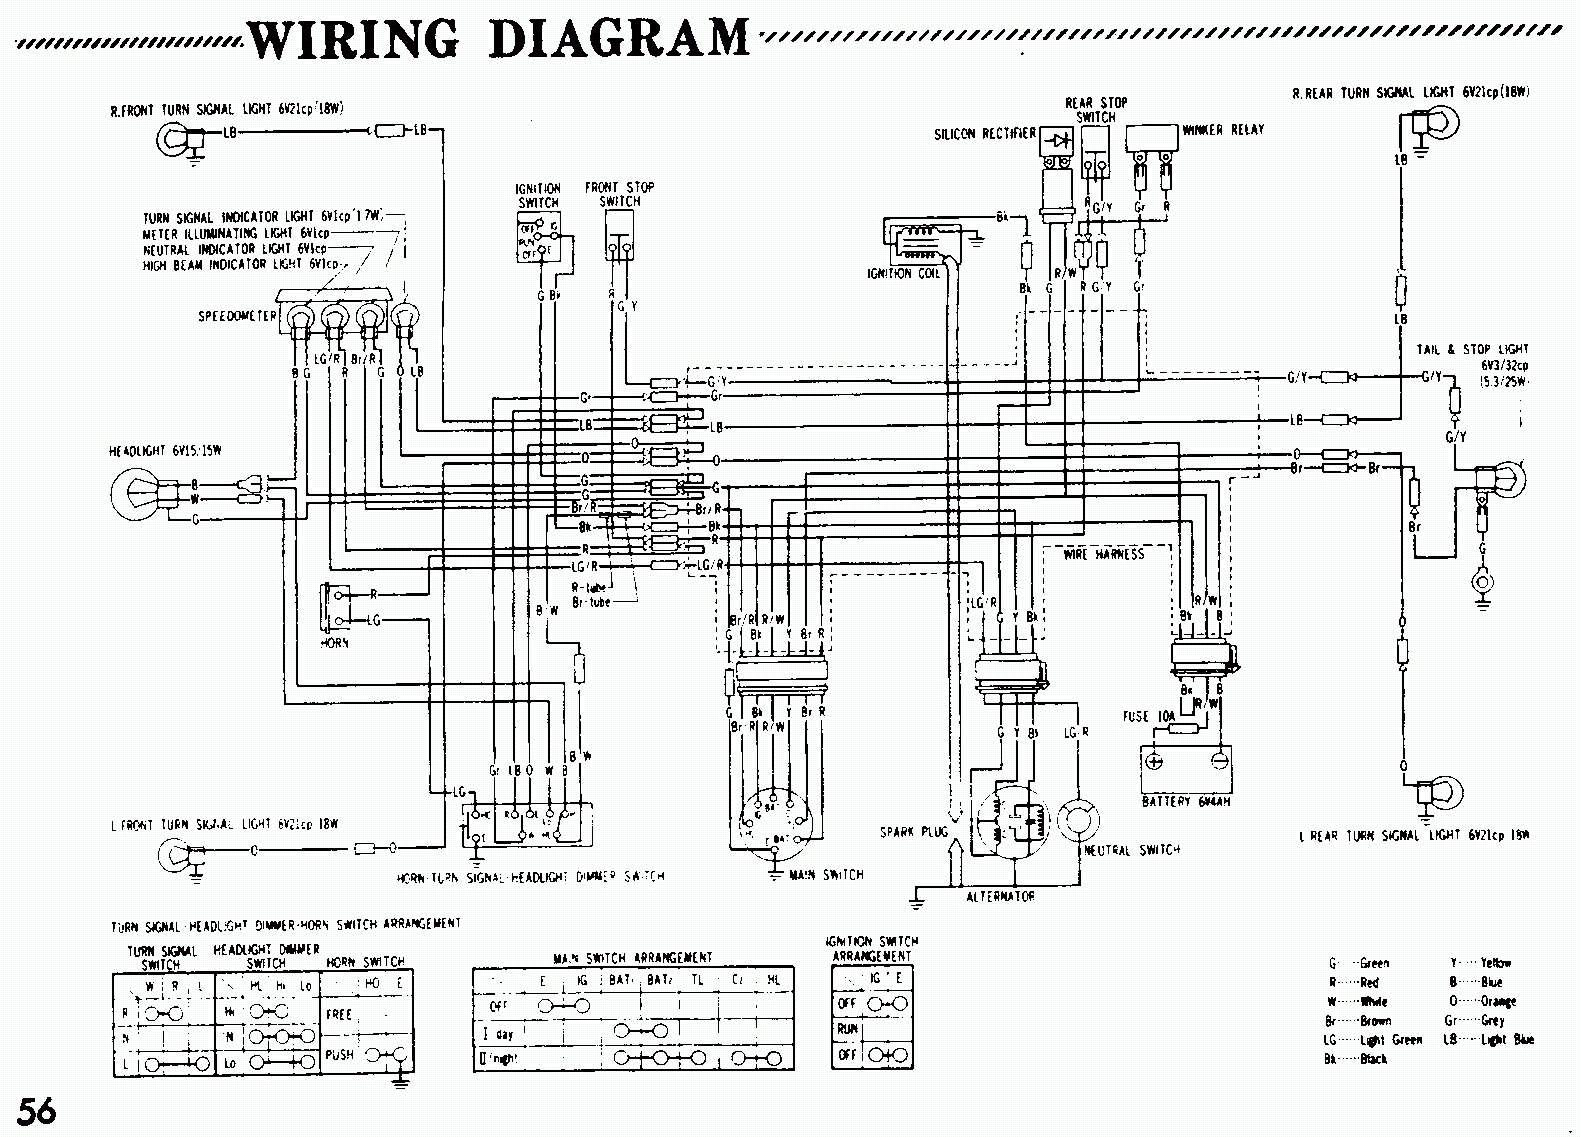 A High Quality CT70 and Clone Engine wiring diagram is available at  http://parduebrothers.com/product/honda-ct70-lifan-clone-engine-12-volt- wiring-diagram/